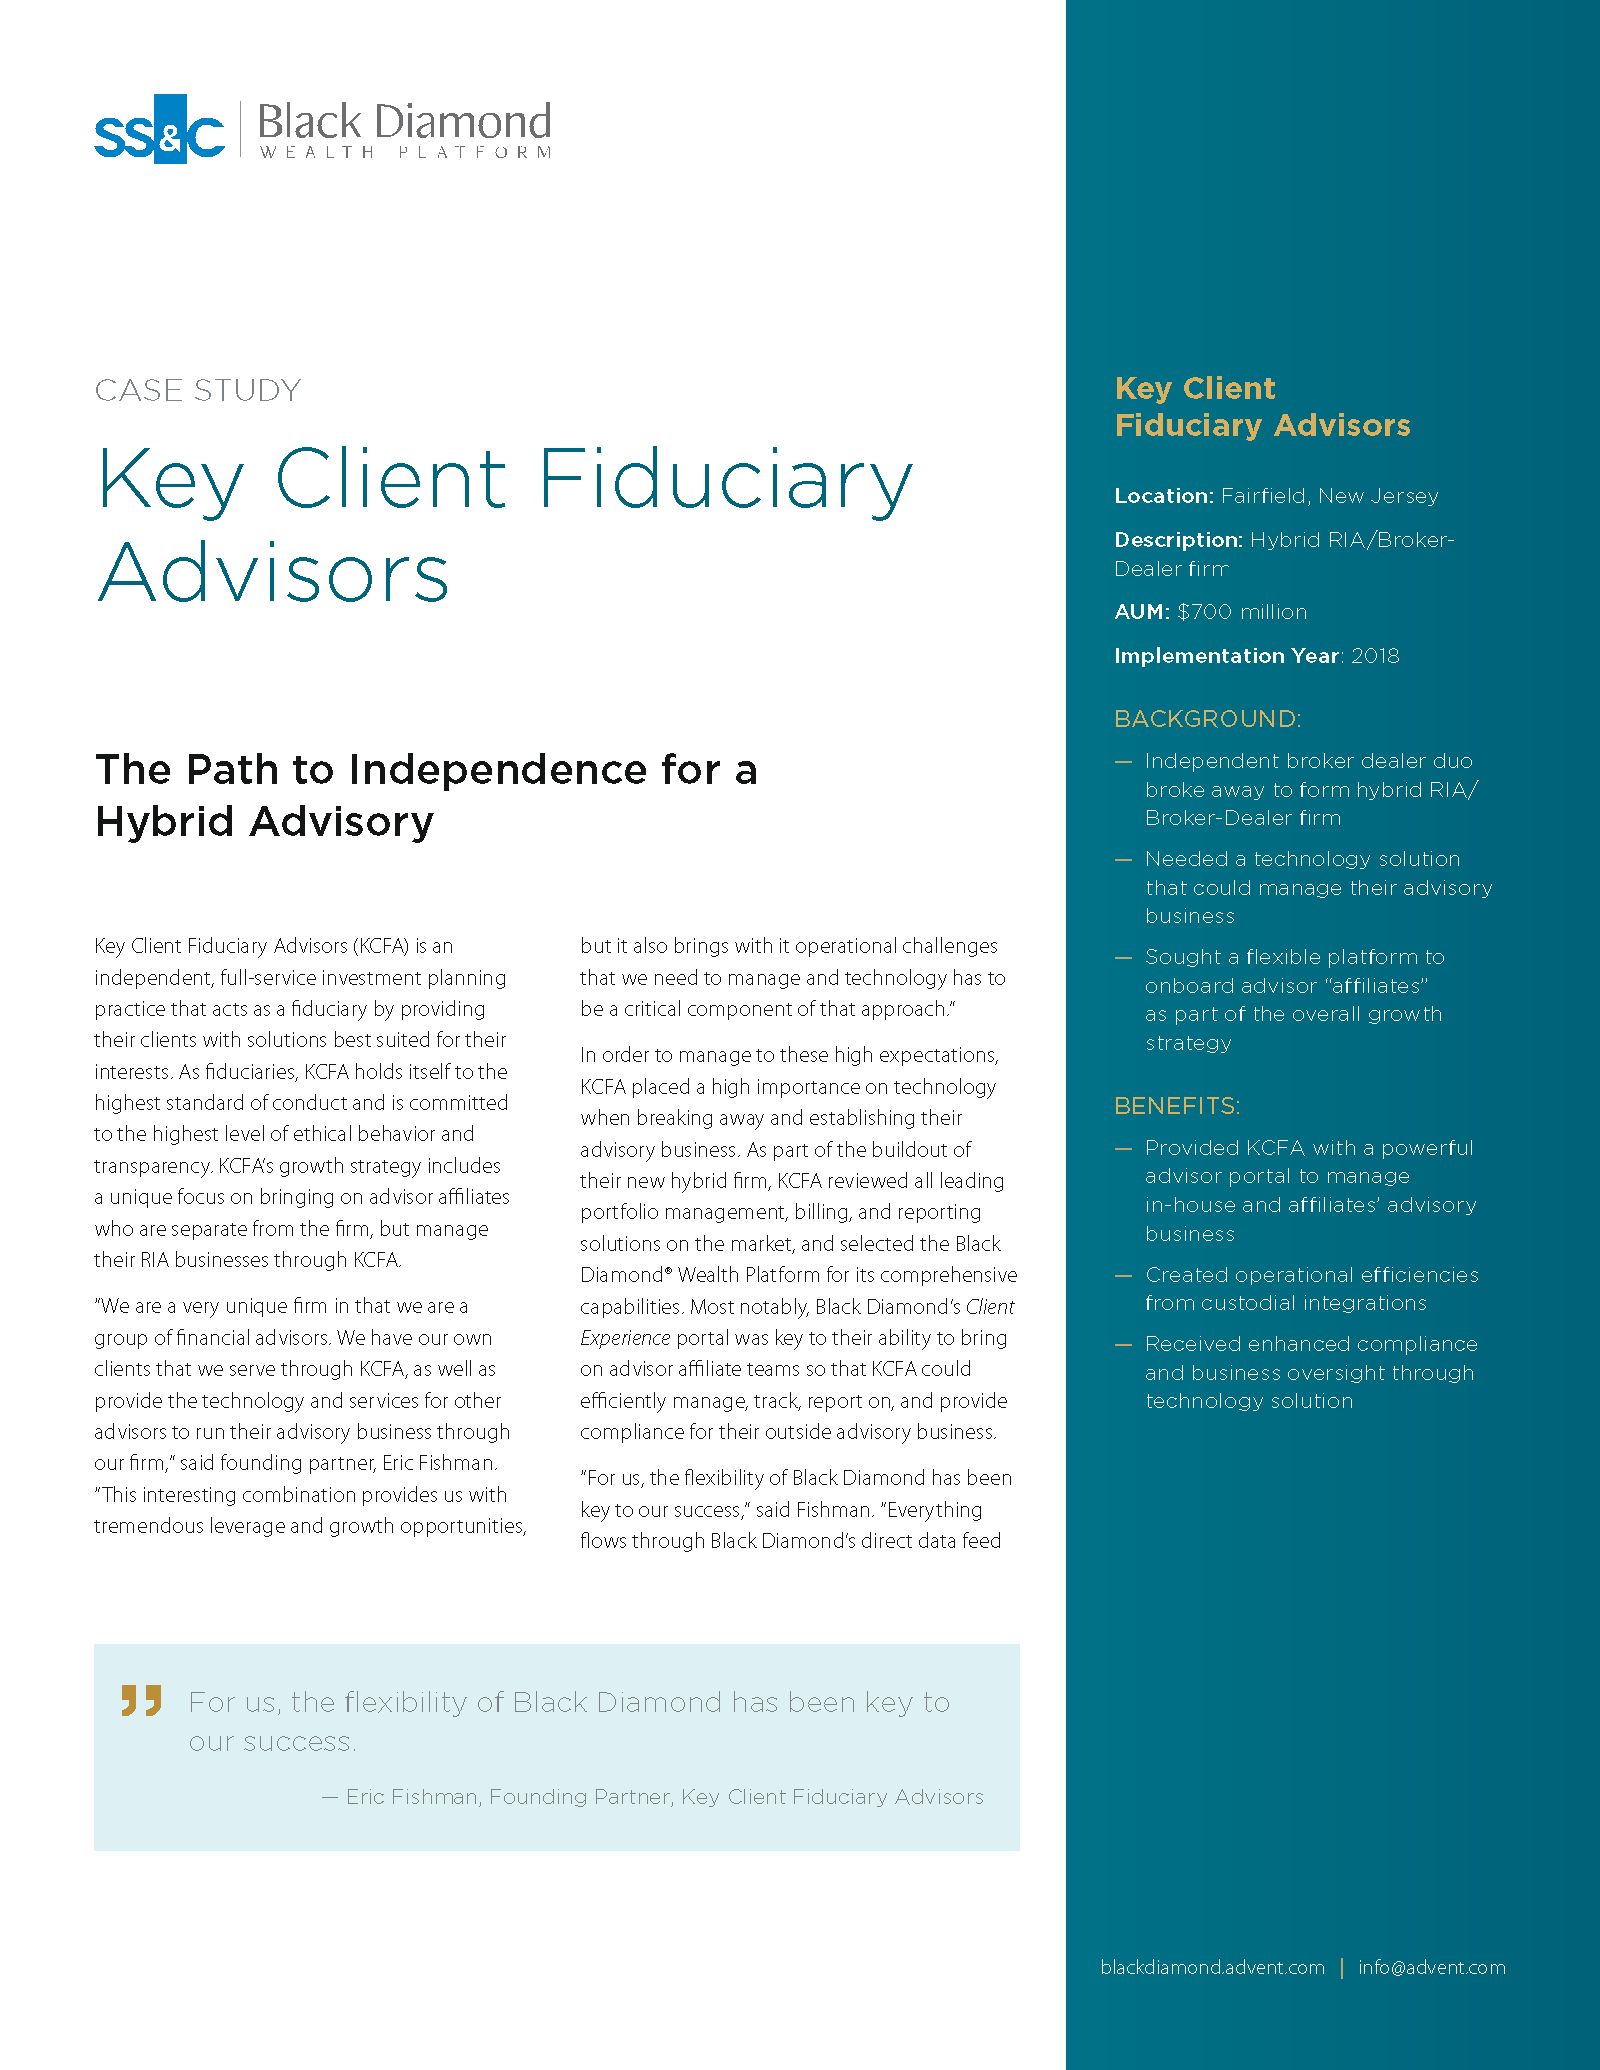 poster image for <p>Key Client Fiduciary Advisors</p>